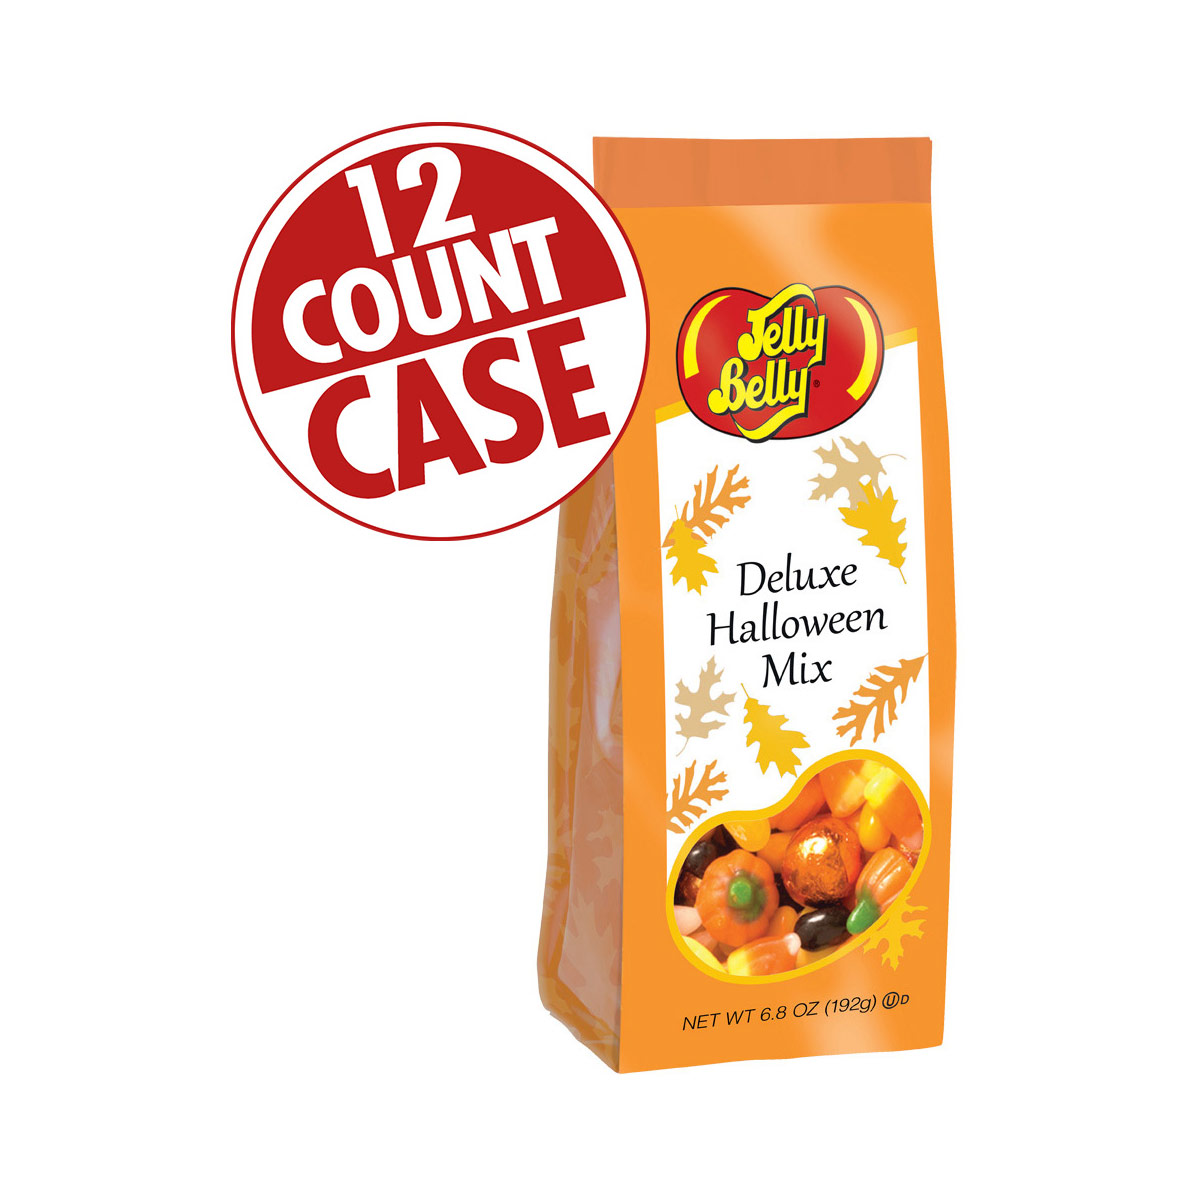 Deluxe Autumn Mix Gift Bags - 6.8 Bags - 12-Count Case